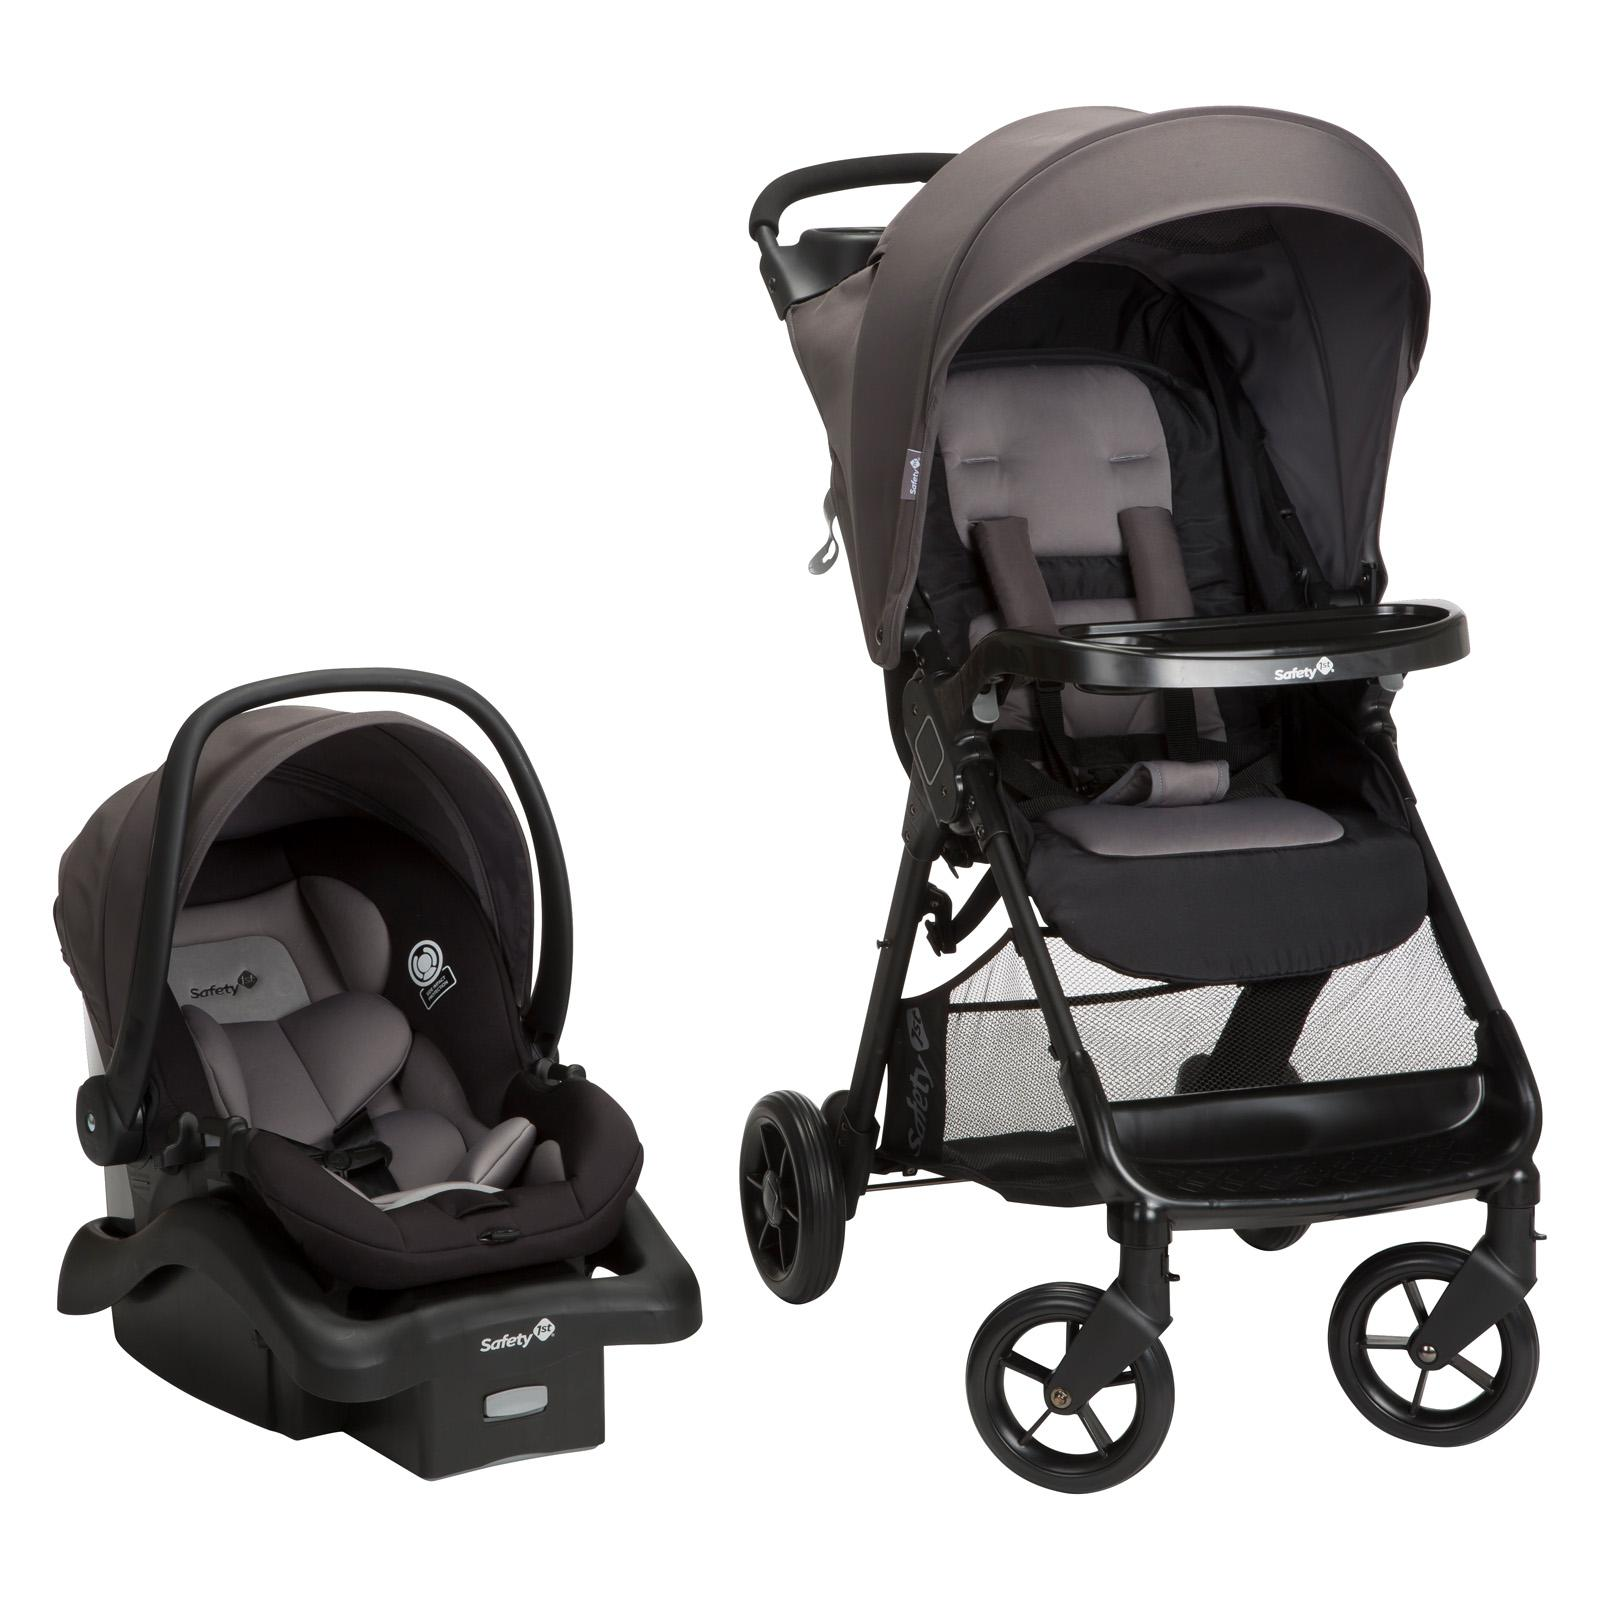 Safety 1st Smooth Ride Travel System - Monument - TR378EEL